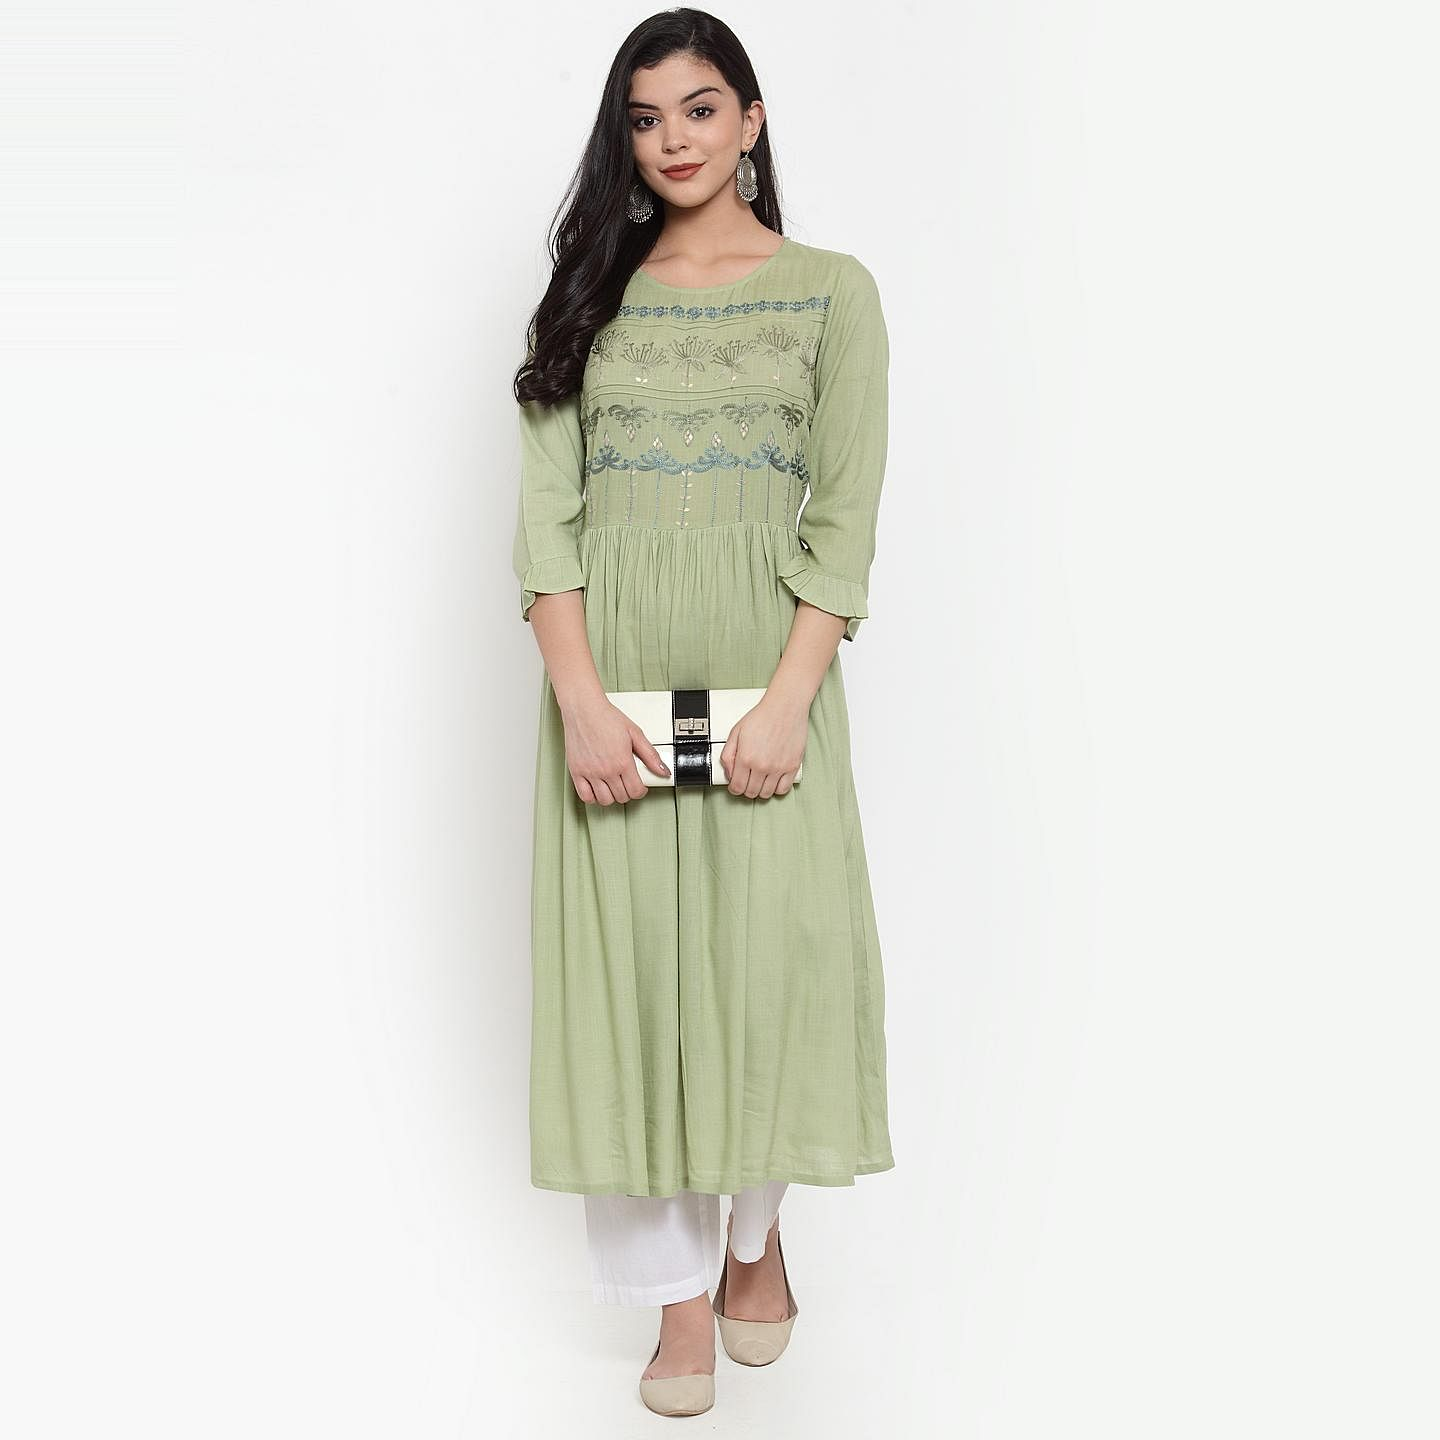 Ideal Green Colored Party Wear Embroidered Calf Length A-Line Viscose-Rayon Kurti